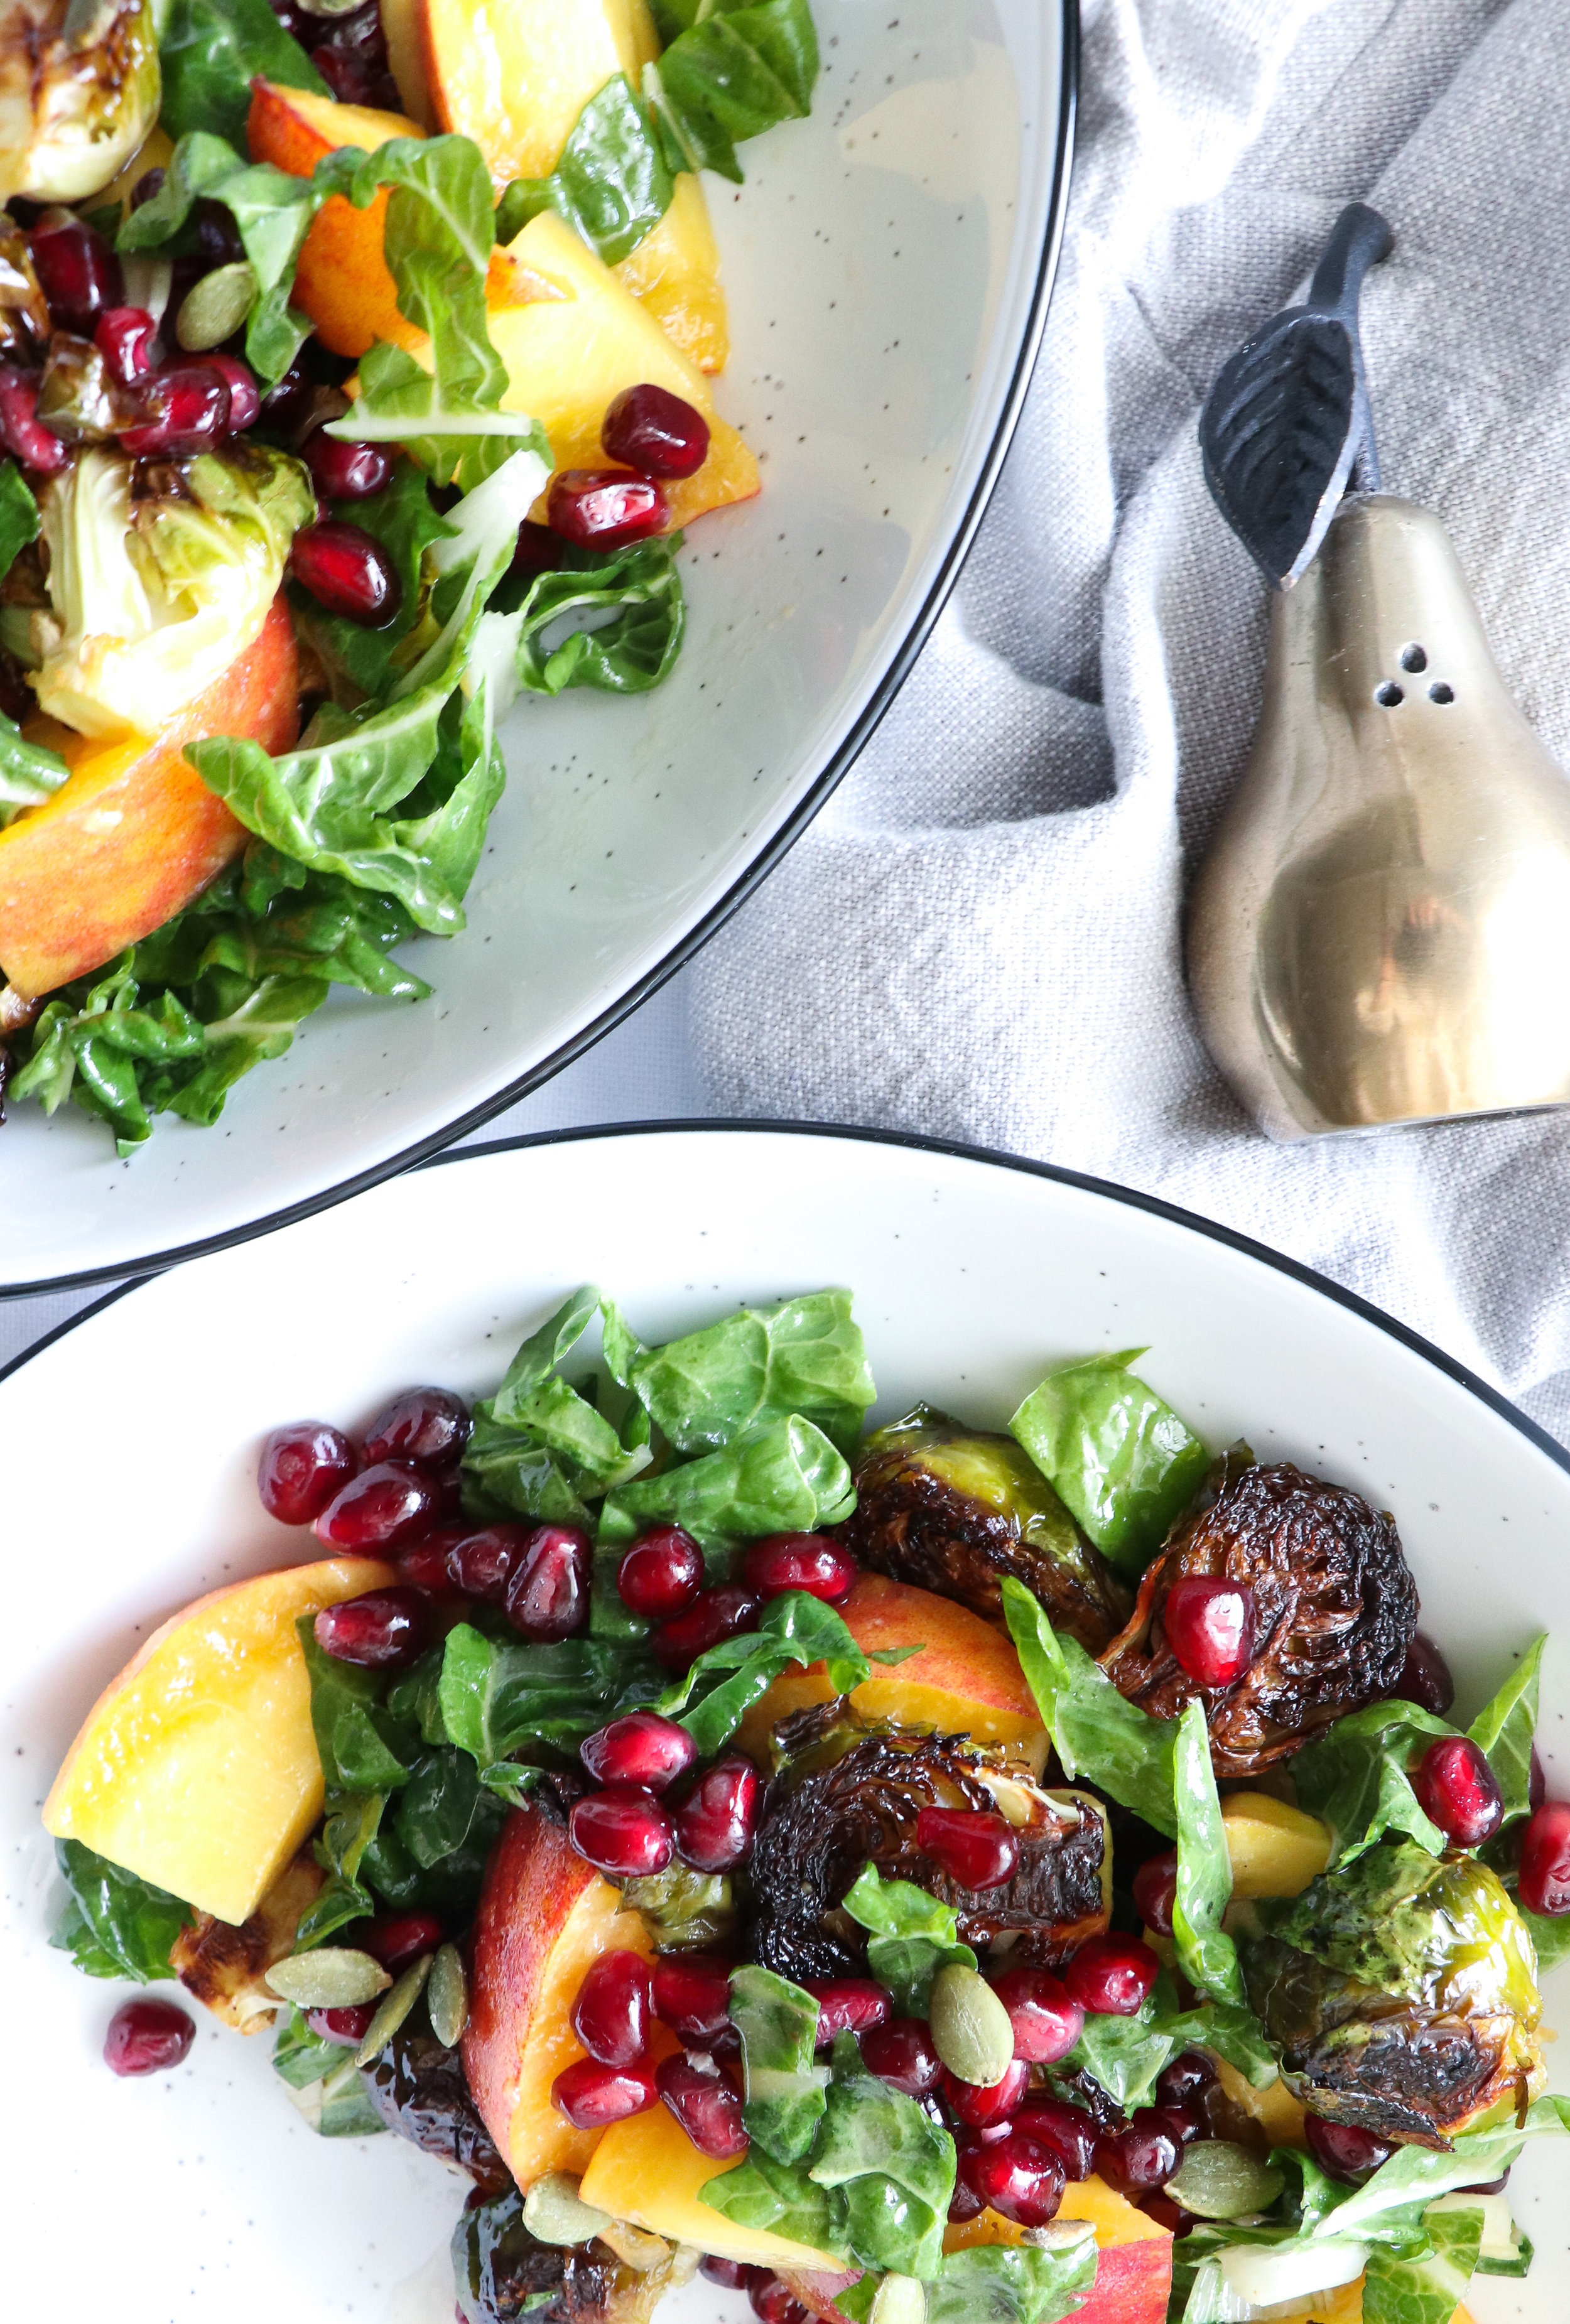 roasted brussels sprout, peach, chard, pomegranate salad.jpg